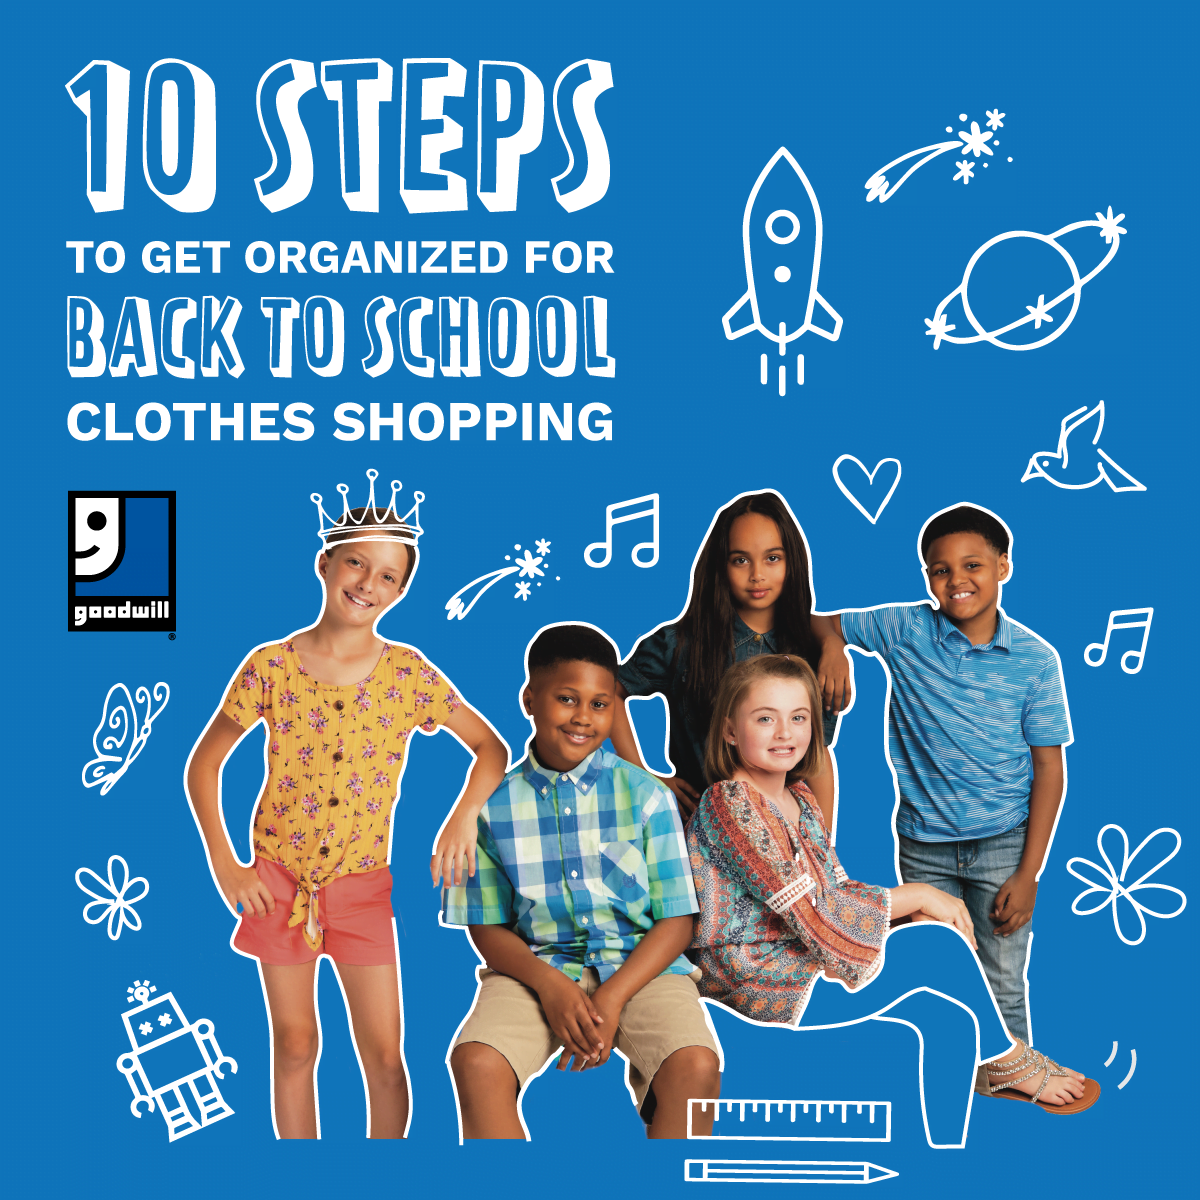 Clothes Shopping Back to School